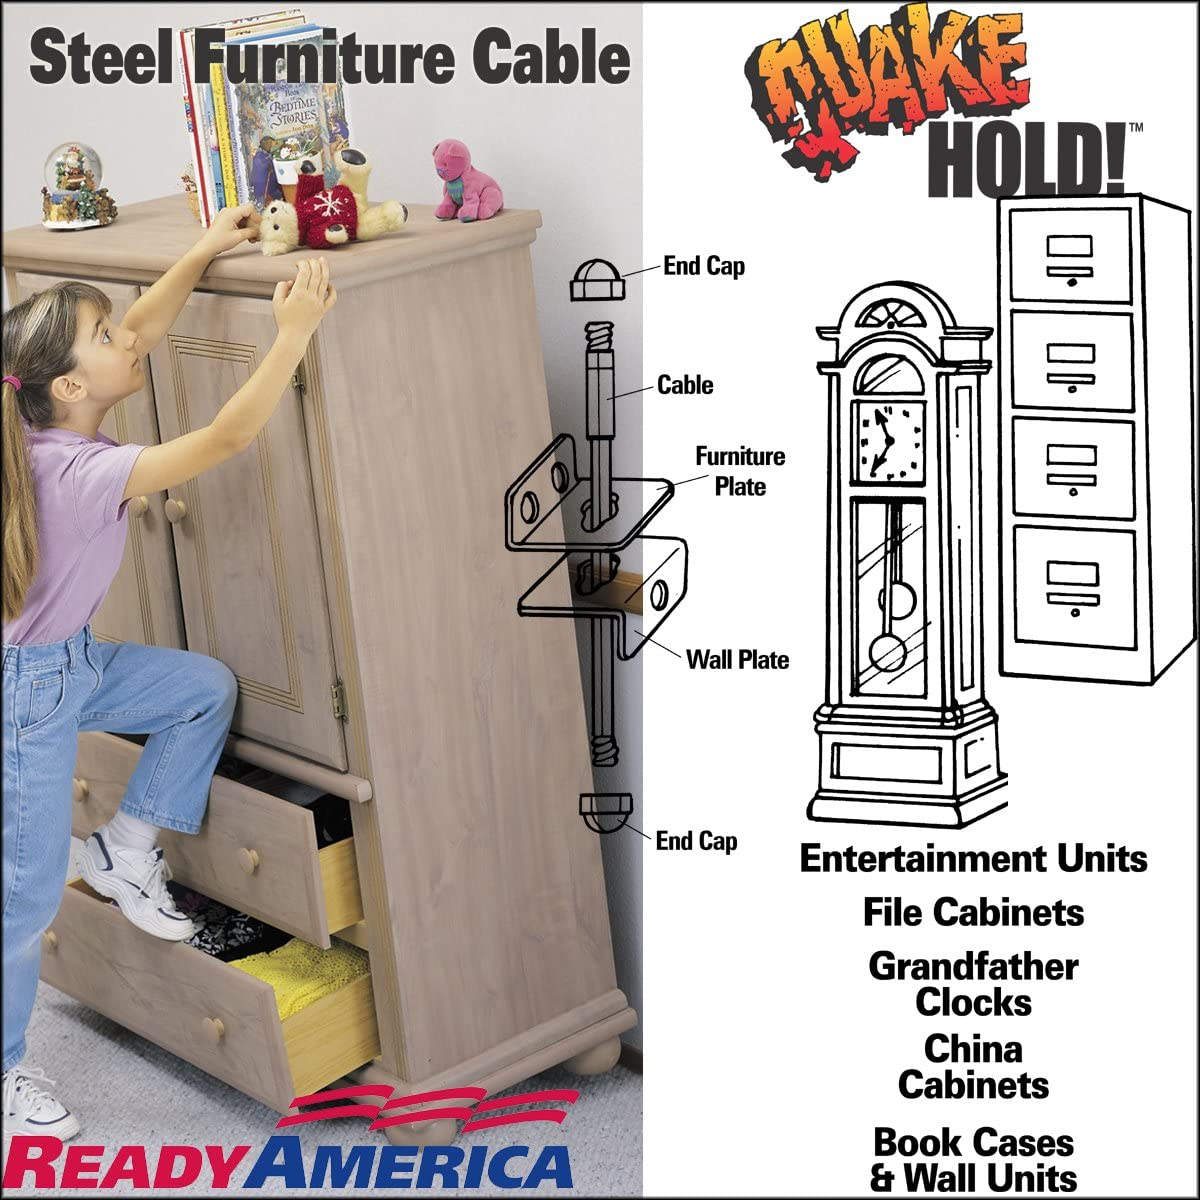 2930 4-Inch Steel Furniture Cable Quakehold